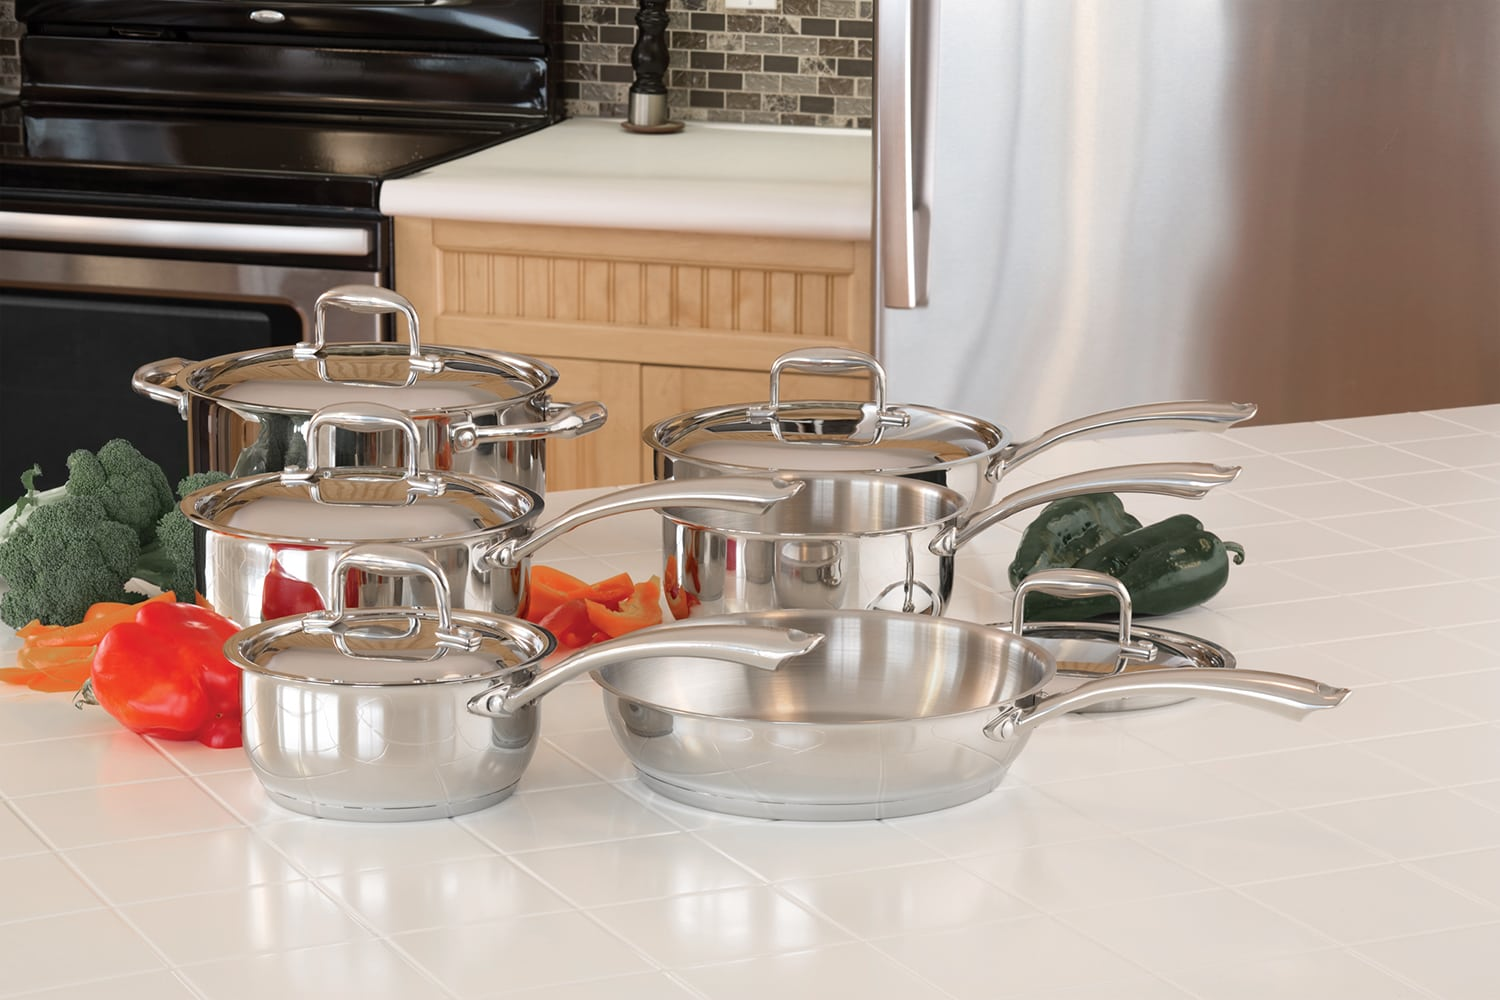 Cooking Products - Paderno Steel Eternity 11-Piece Cookware Set - Stainless Steel